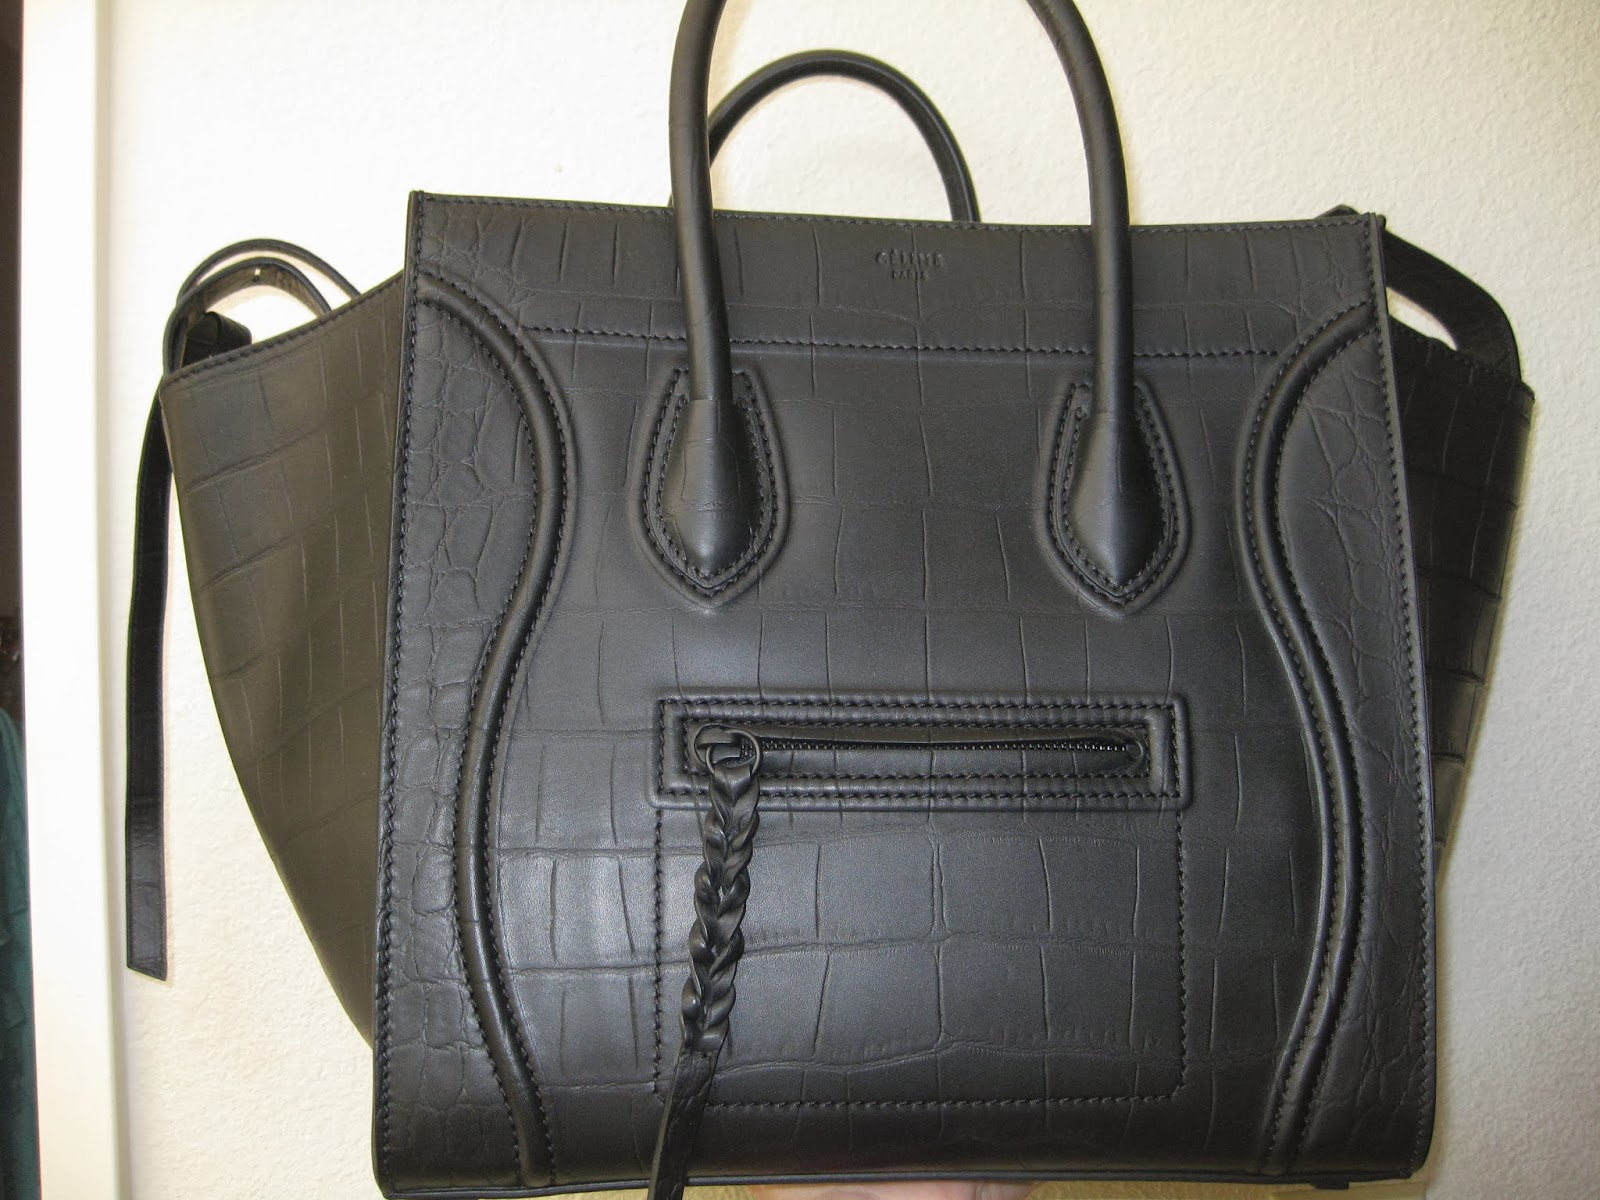 celine luggage tote black and white - My So-Called Life: Happy Belated Birthday to Me!